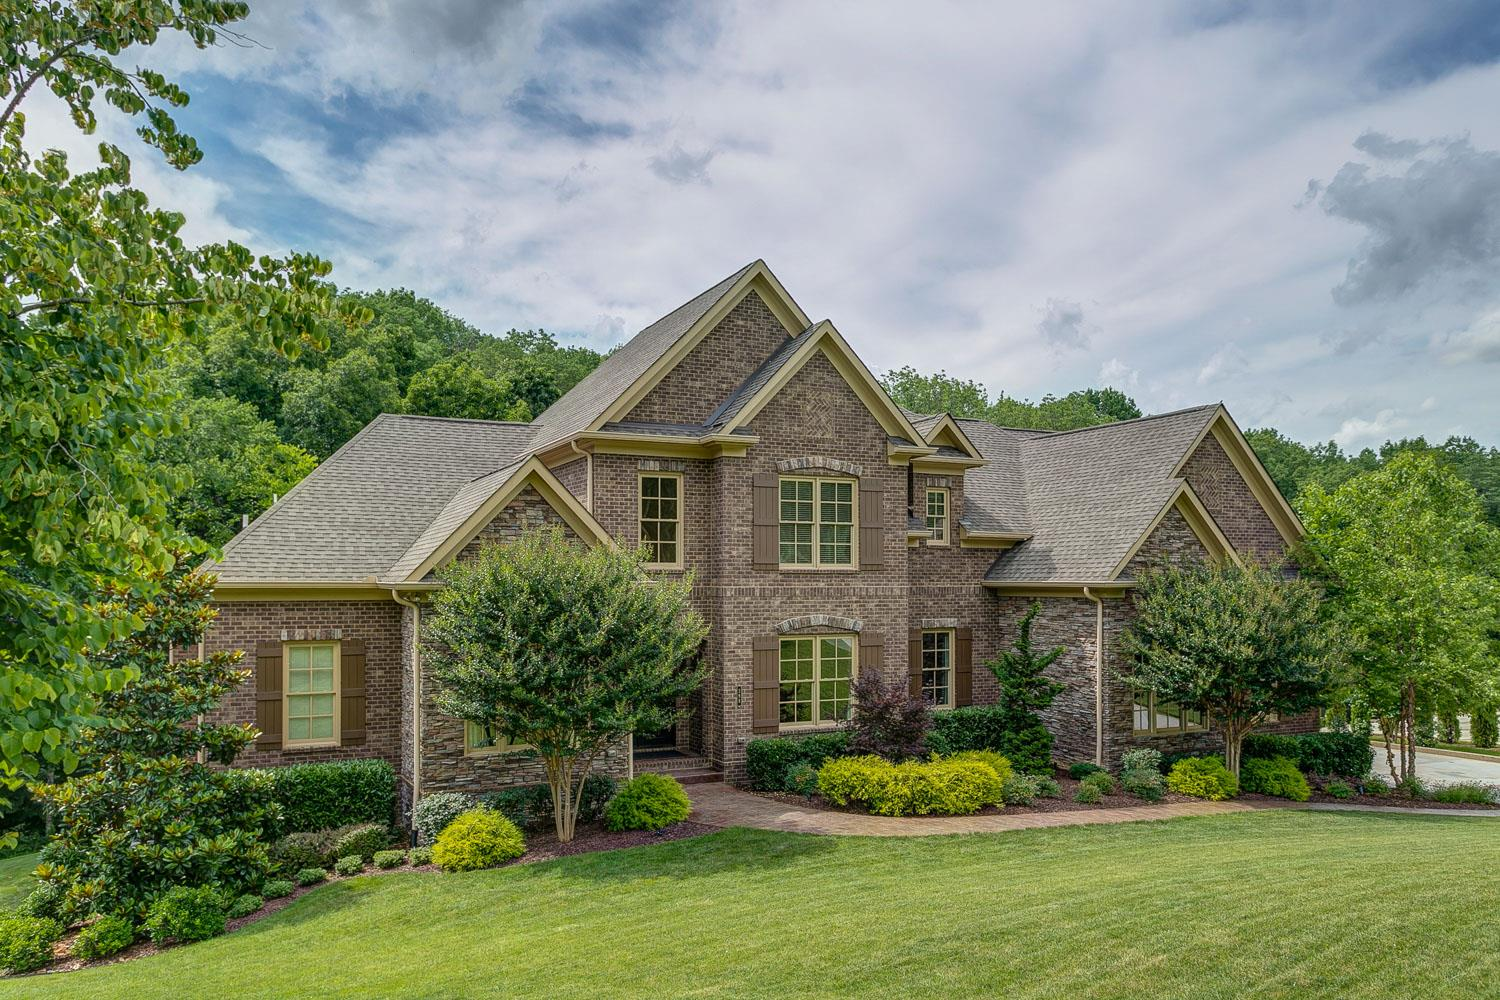 398 The Lady Of The Lake Ln, Franklin, TN 37067 - Franklin, TN real estate listing